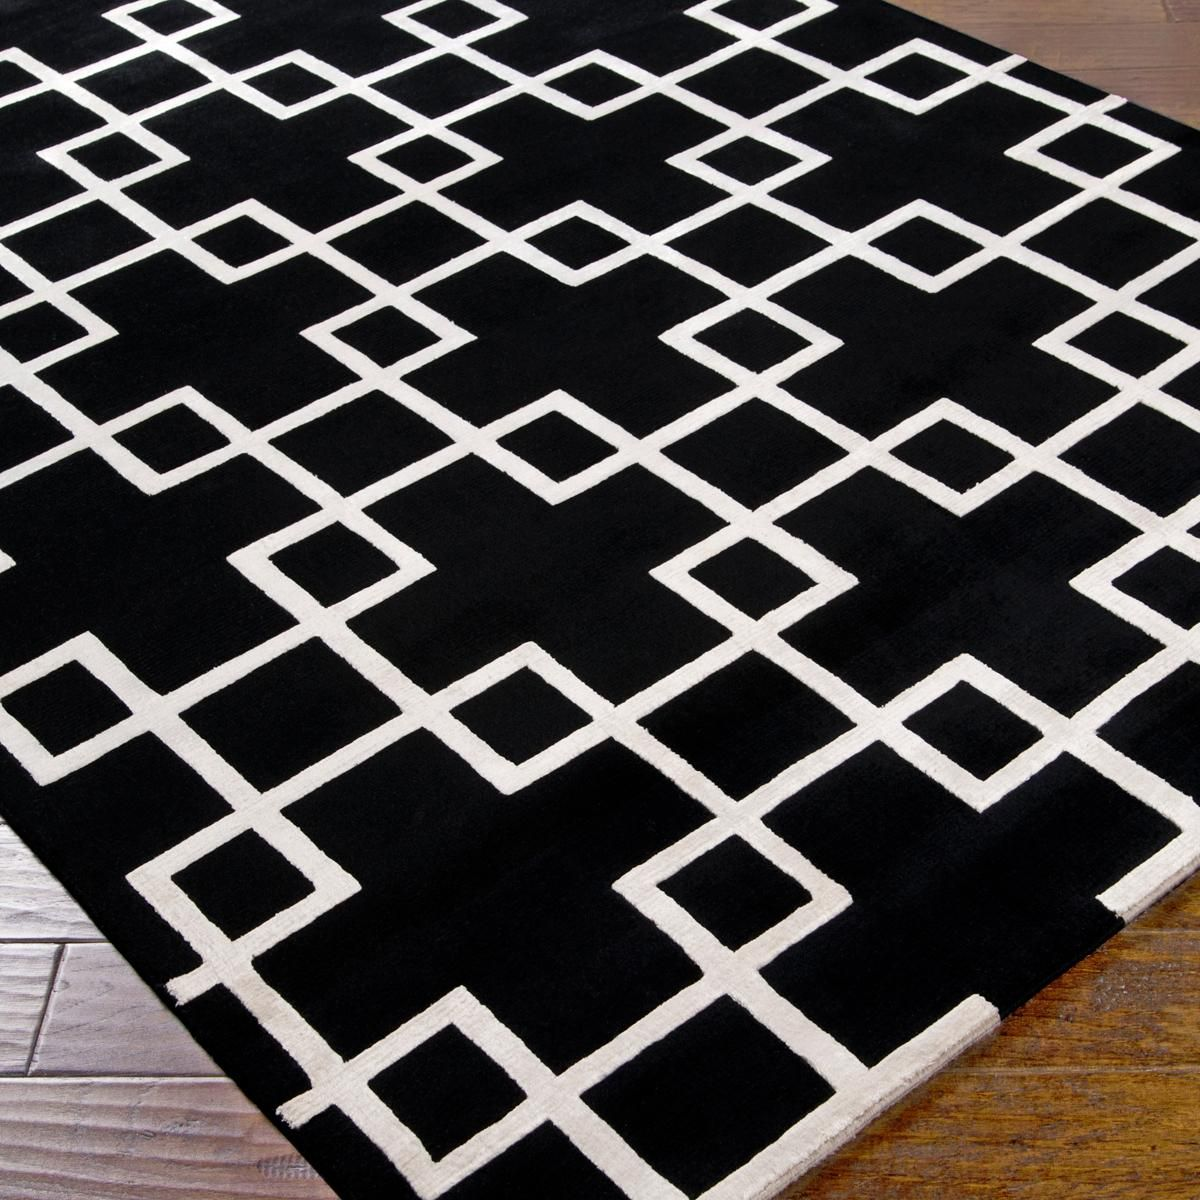 Black And White Geometric Kitchen Rug: Modern Squares Plush Wool Handknot Rug You Can't Be Shy